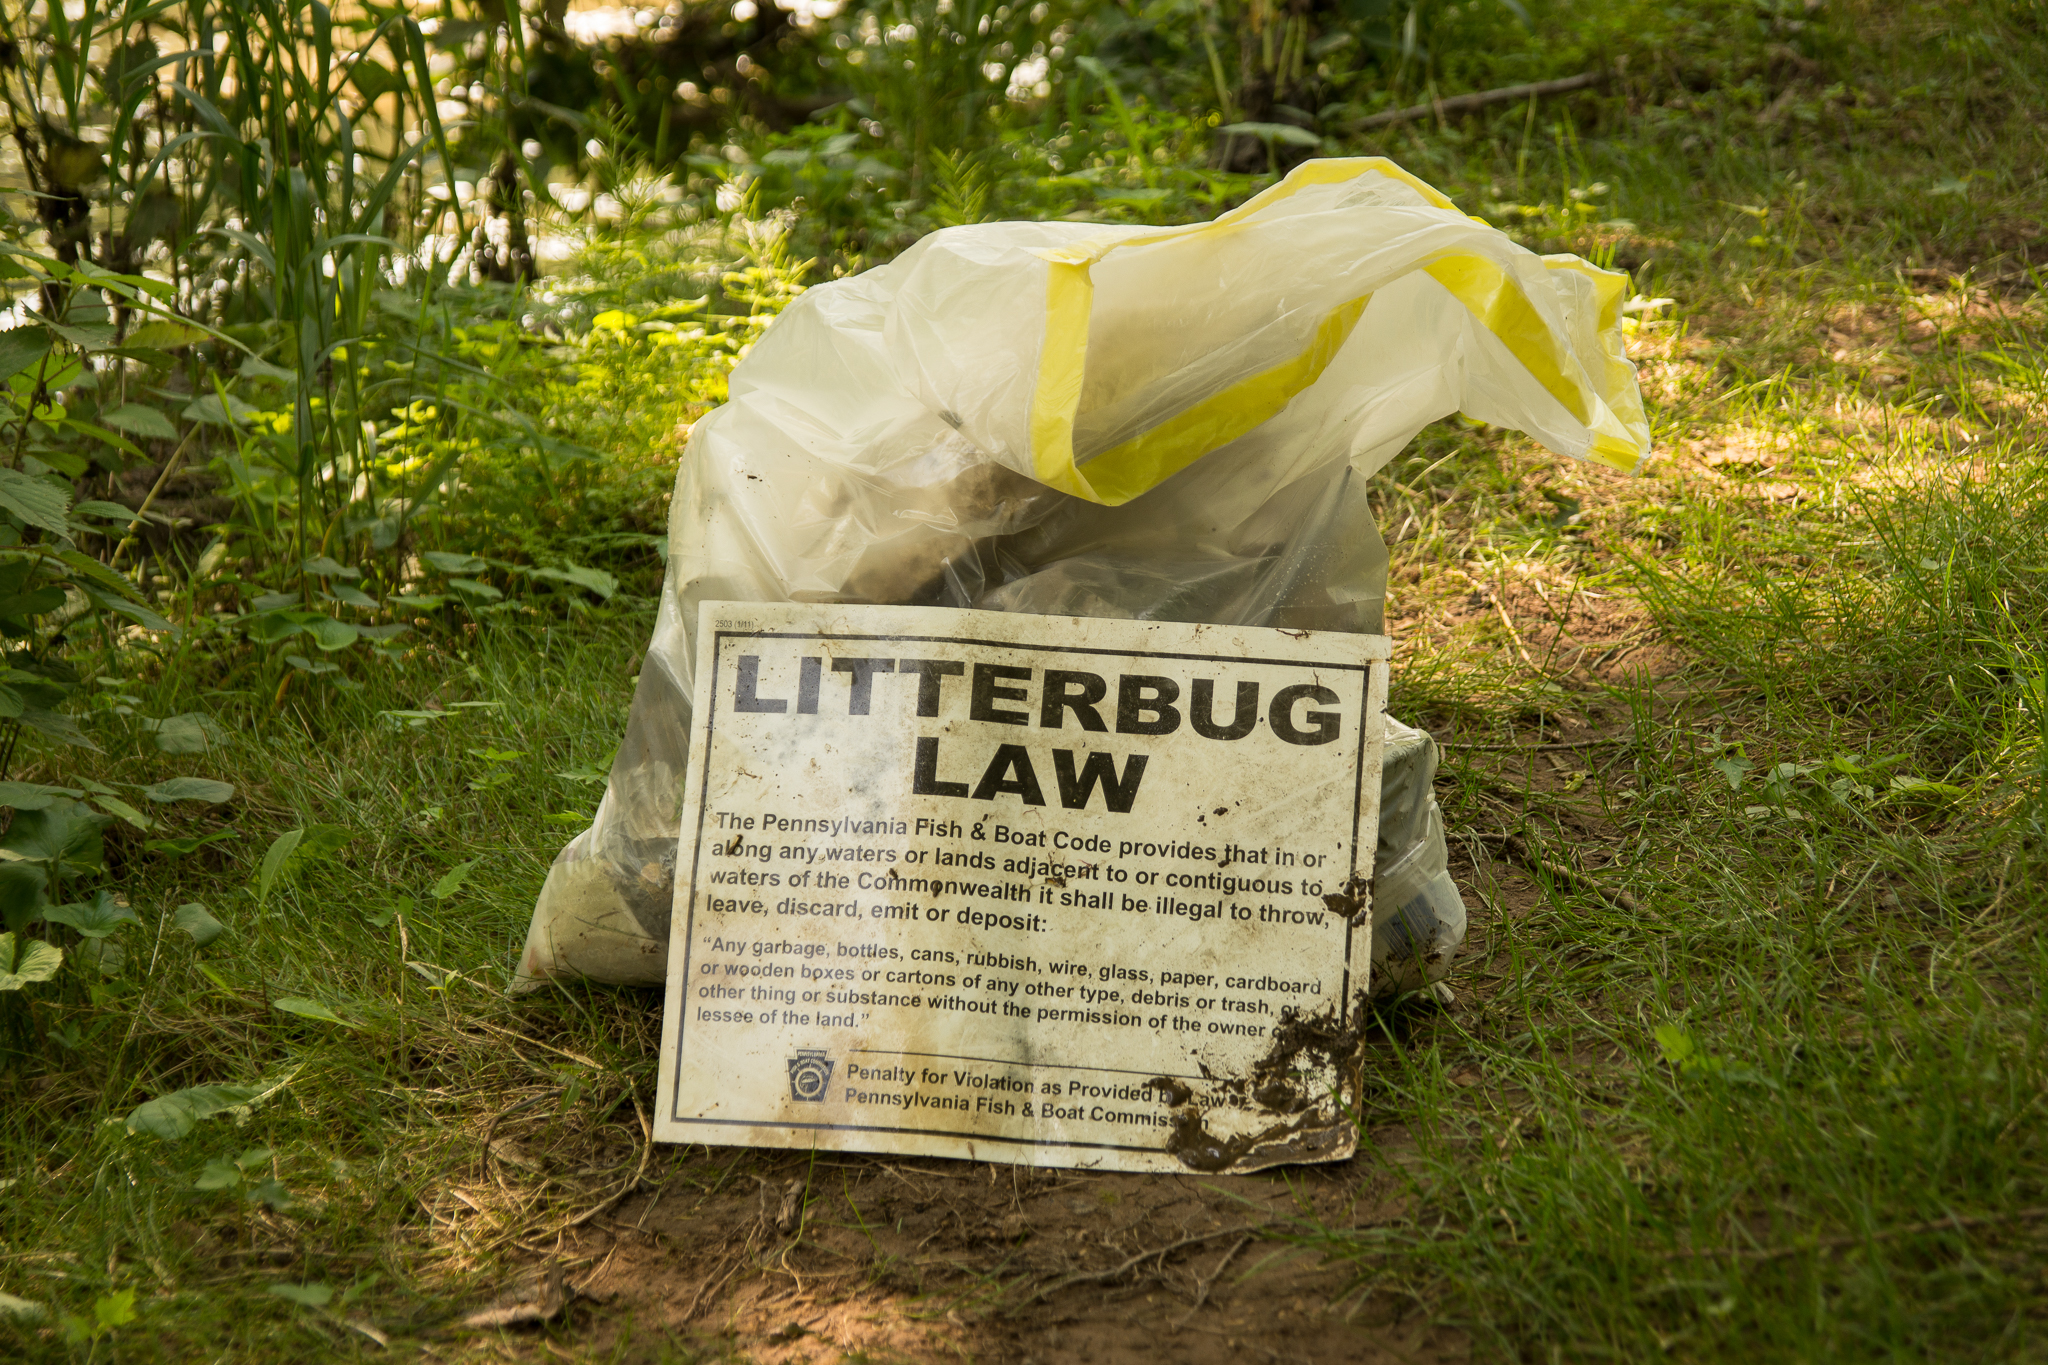 Litterbug Law Poster